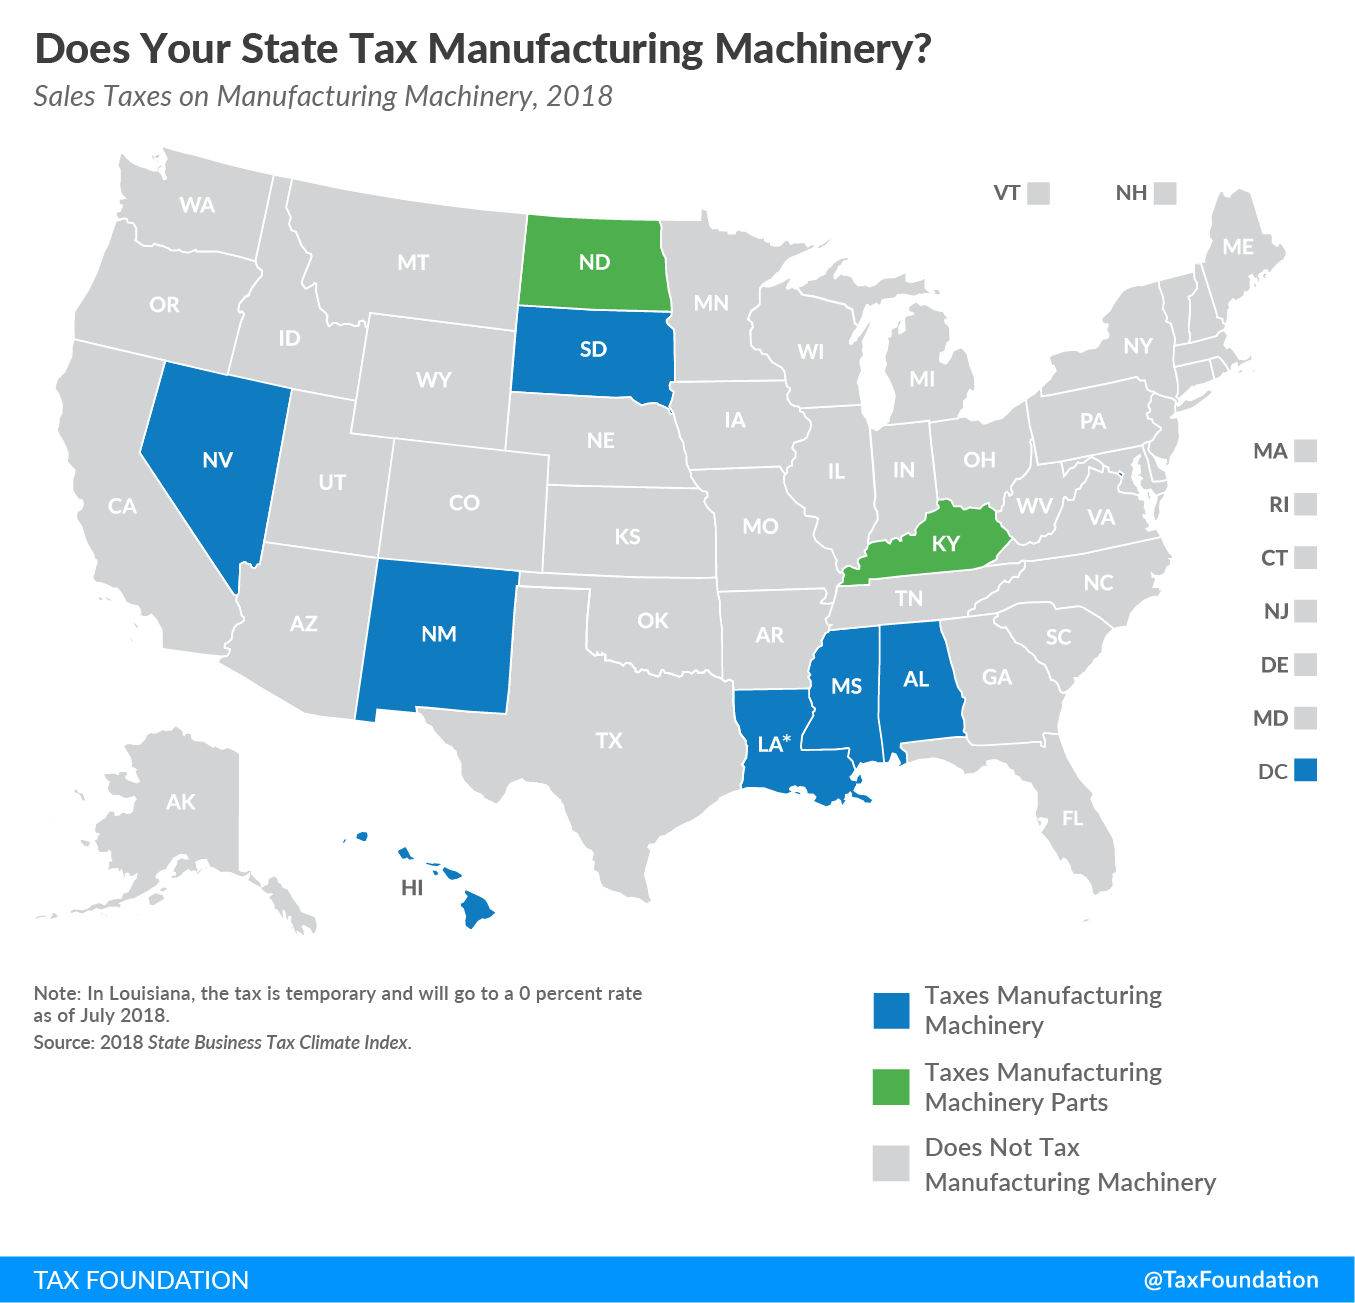 Does Your State Tax Manufacturing Machinery?